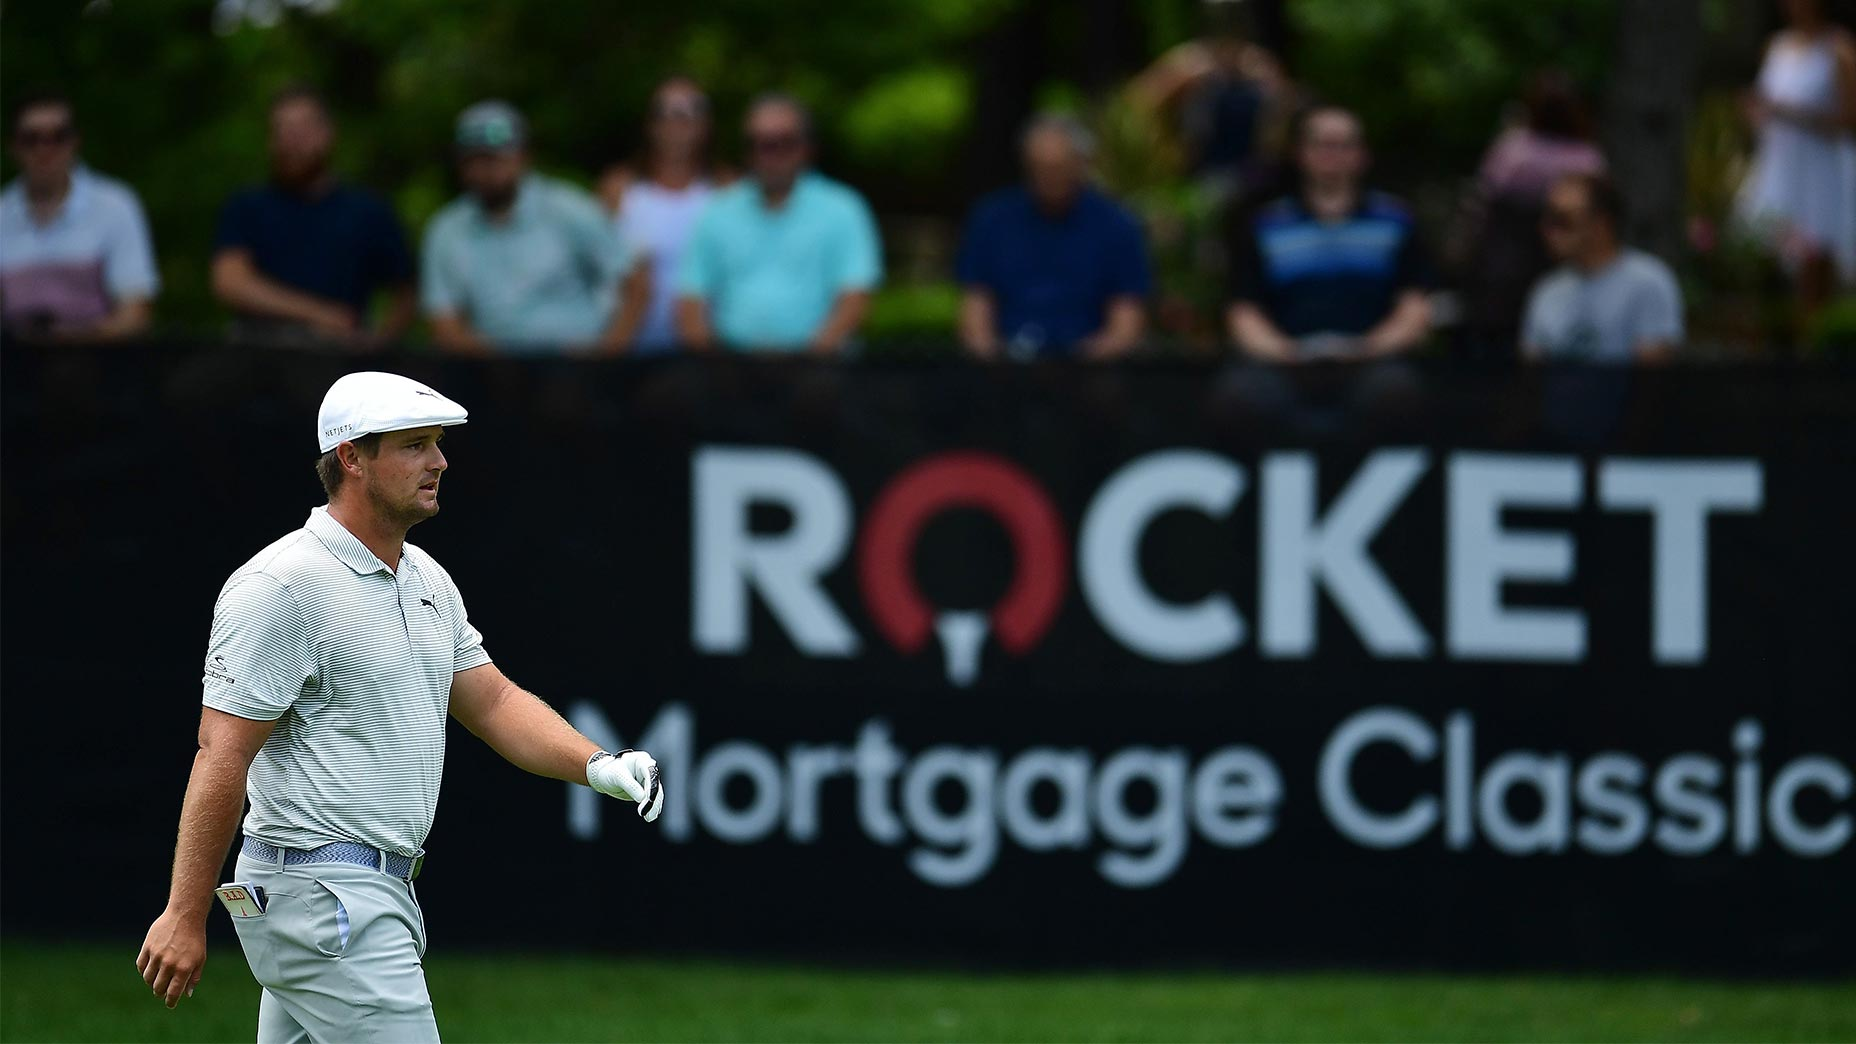 bryson dechambeau walks rocket mortgage classic